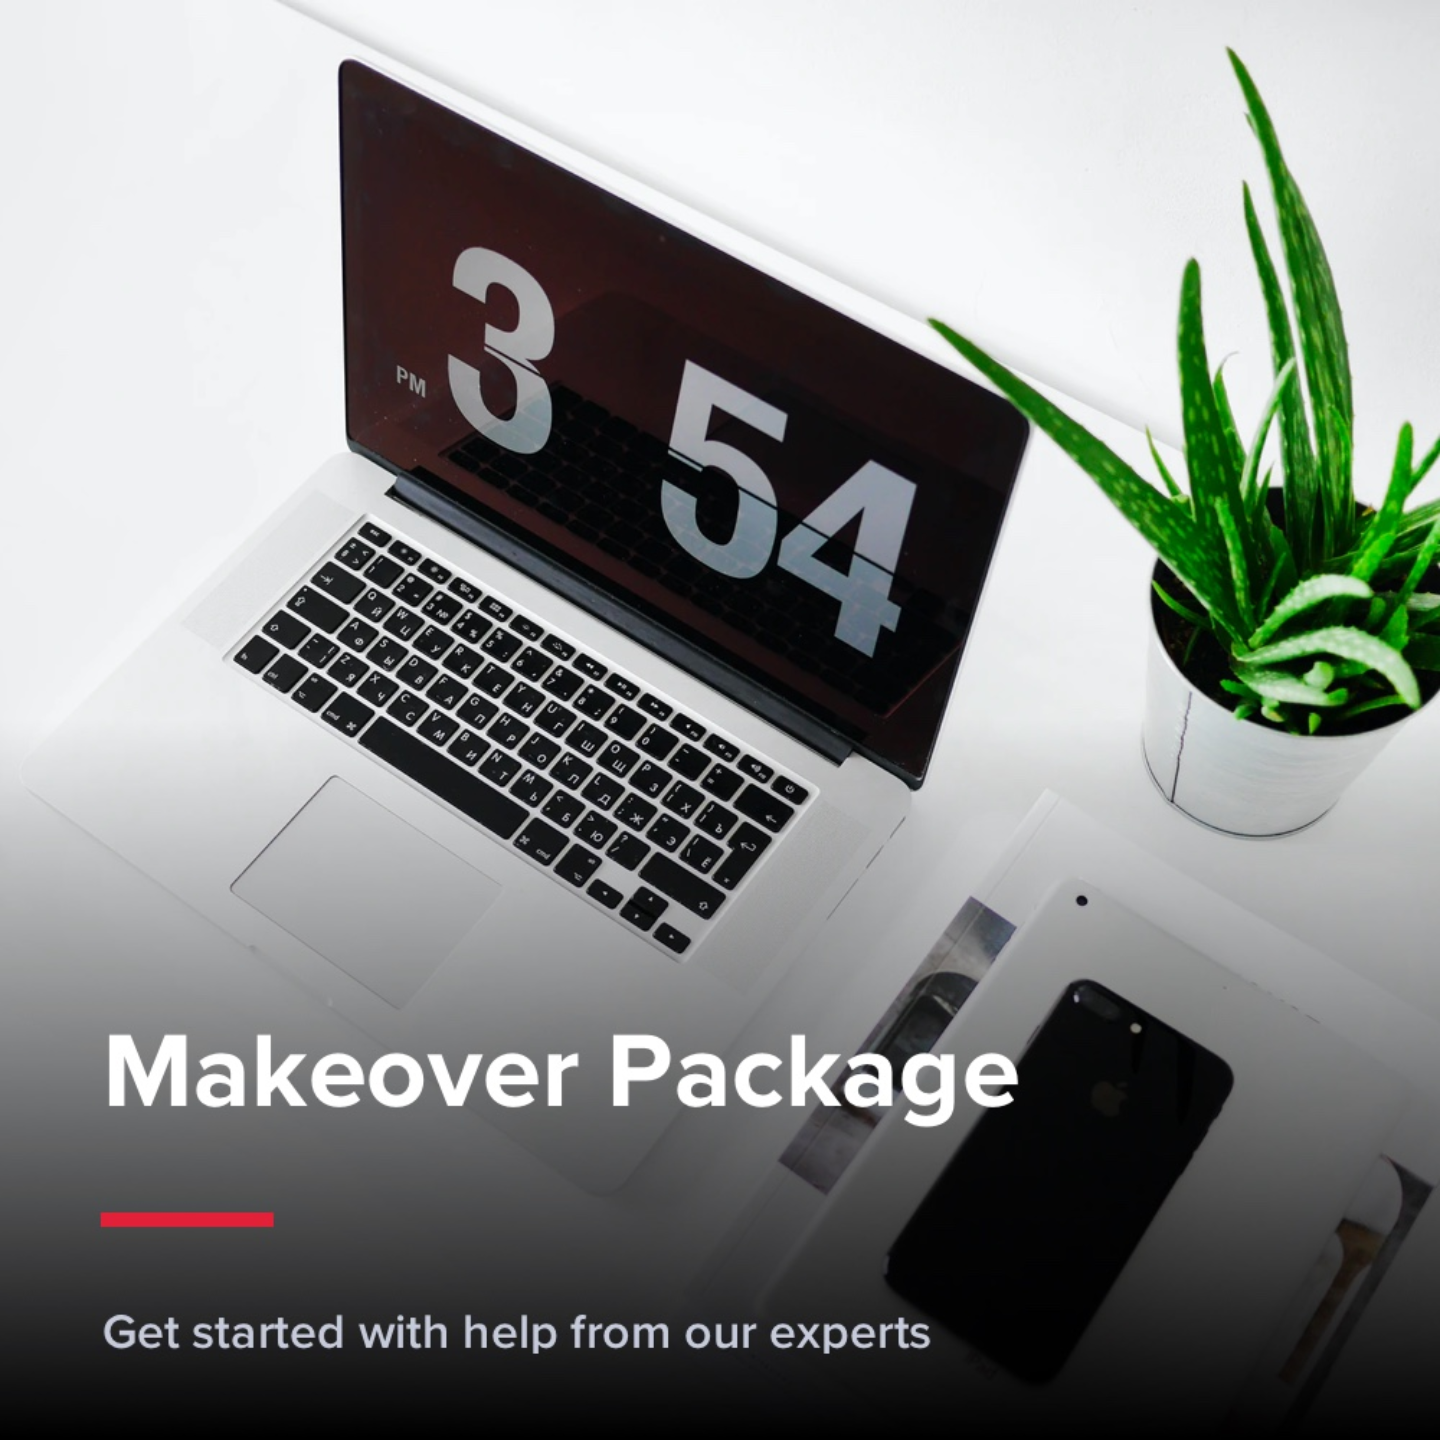 Makeover Package